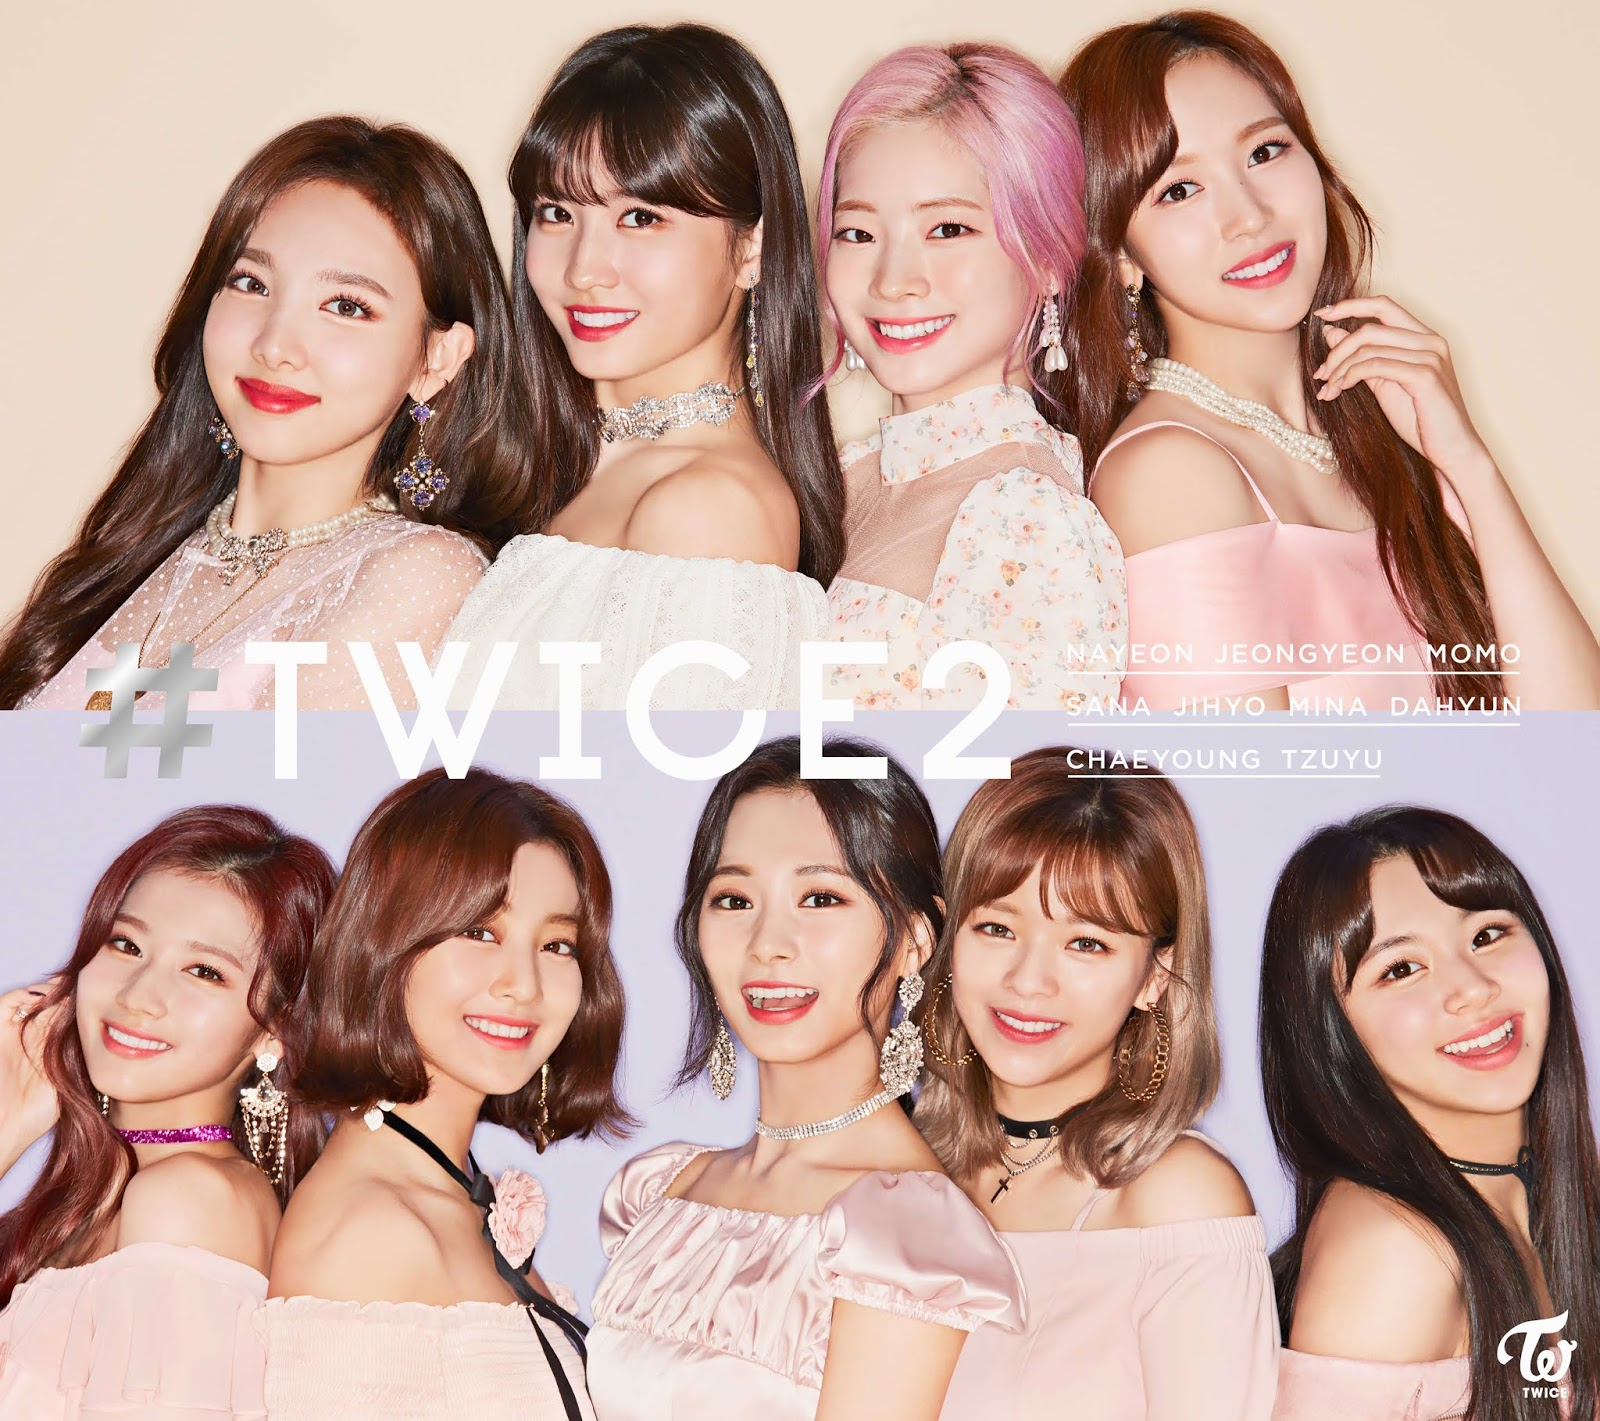 [DVD] TWICE - #TWICE2 [Limited Edition/Type B] [06.03.2019]